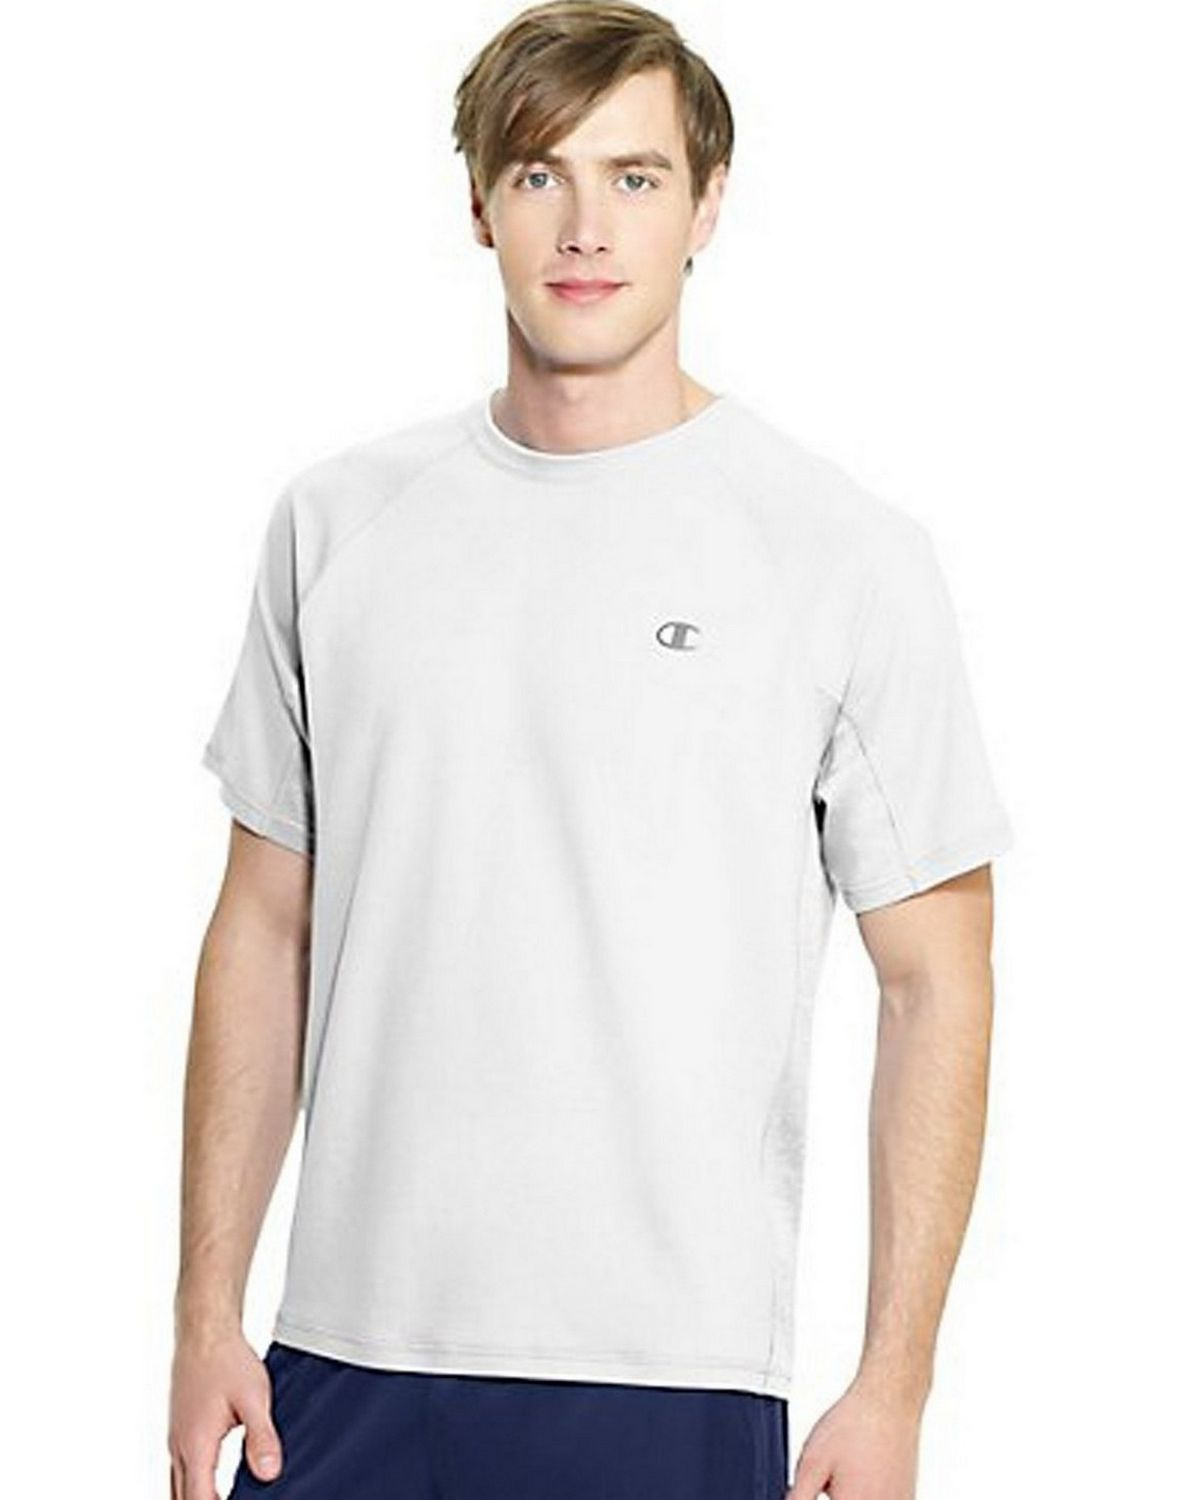 Champion T6608 Vapor PowerTrain Colorblock Tee - Stealth/Black - S T6608